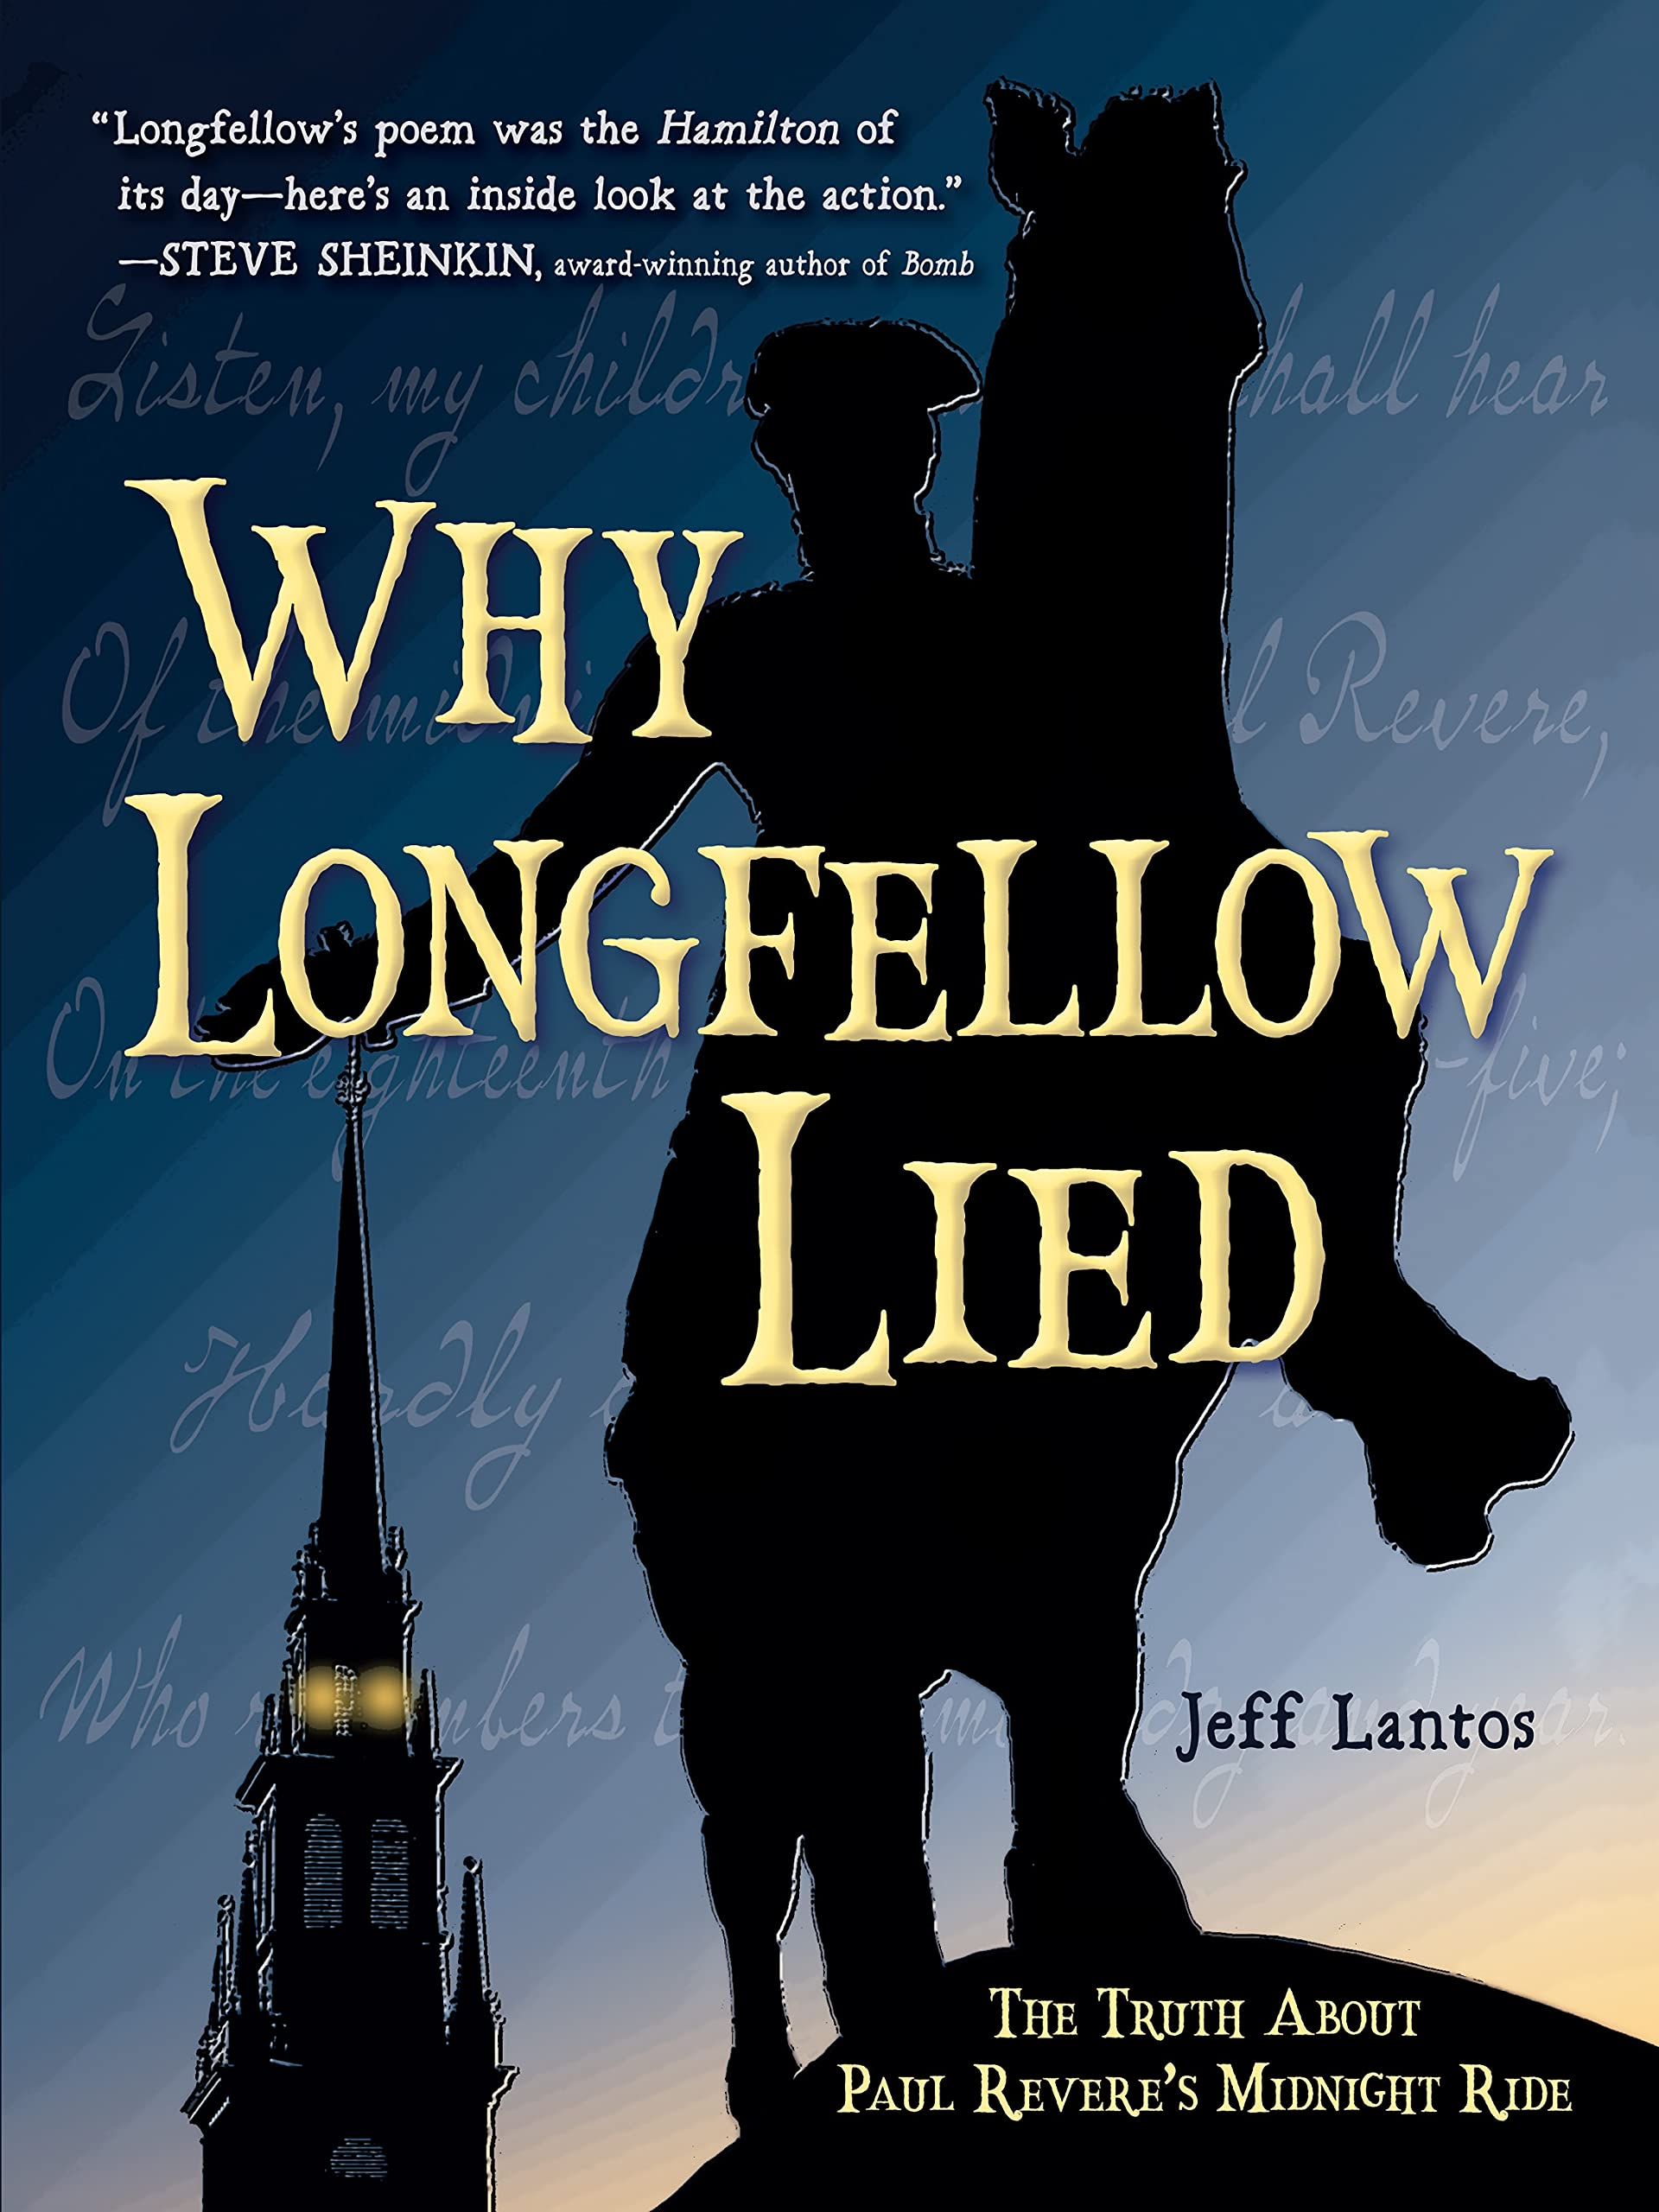 Why Longfellow Lied: The Truth About Paul Revere's Midnight Ride: Lantos,  Jeff: 9781580899338: Amazon.com: Books